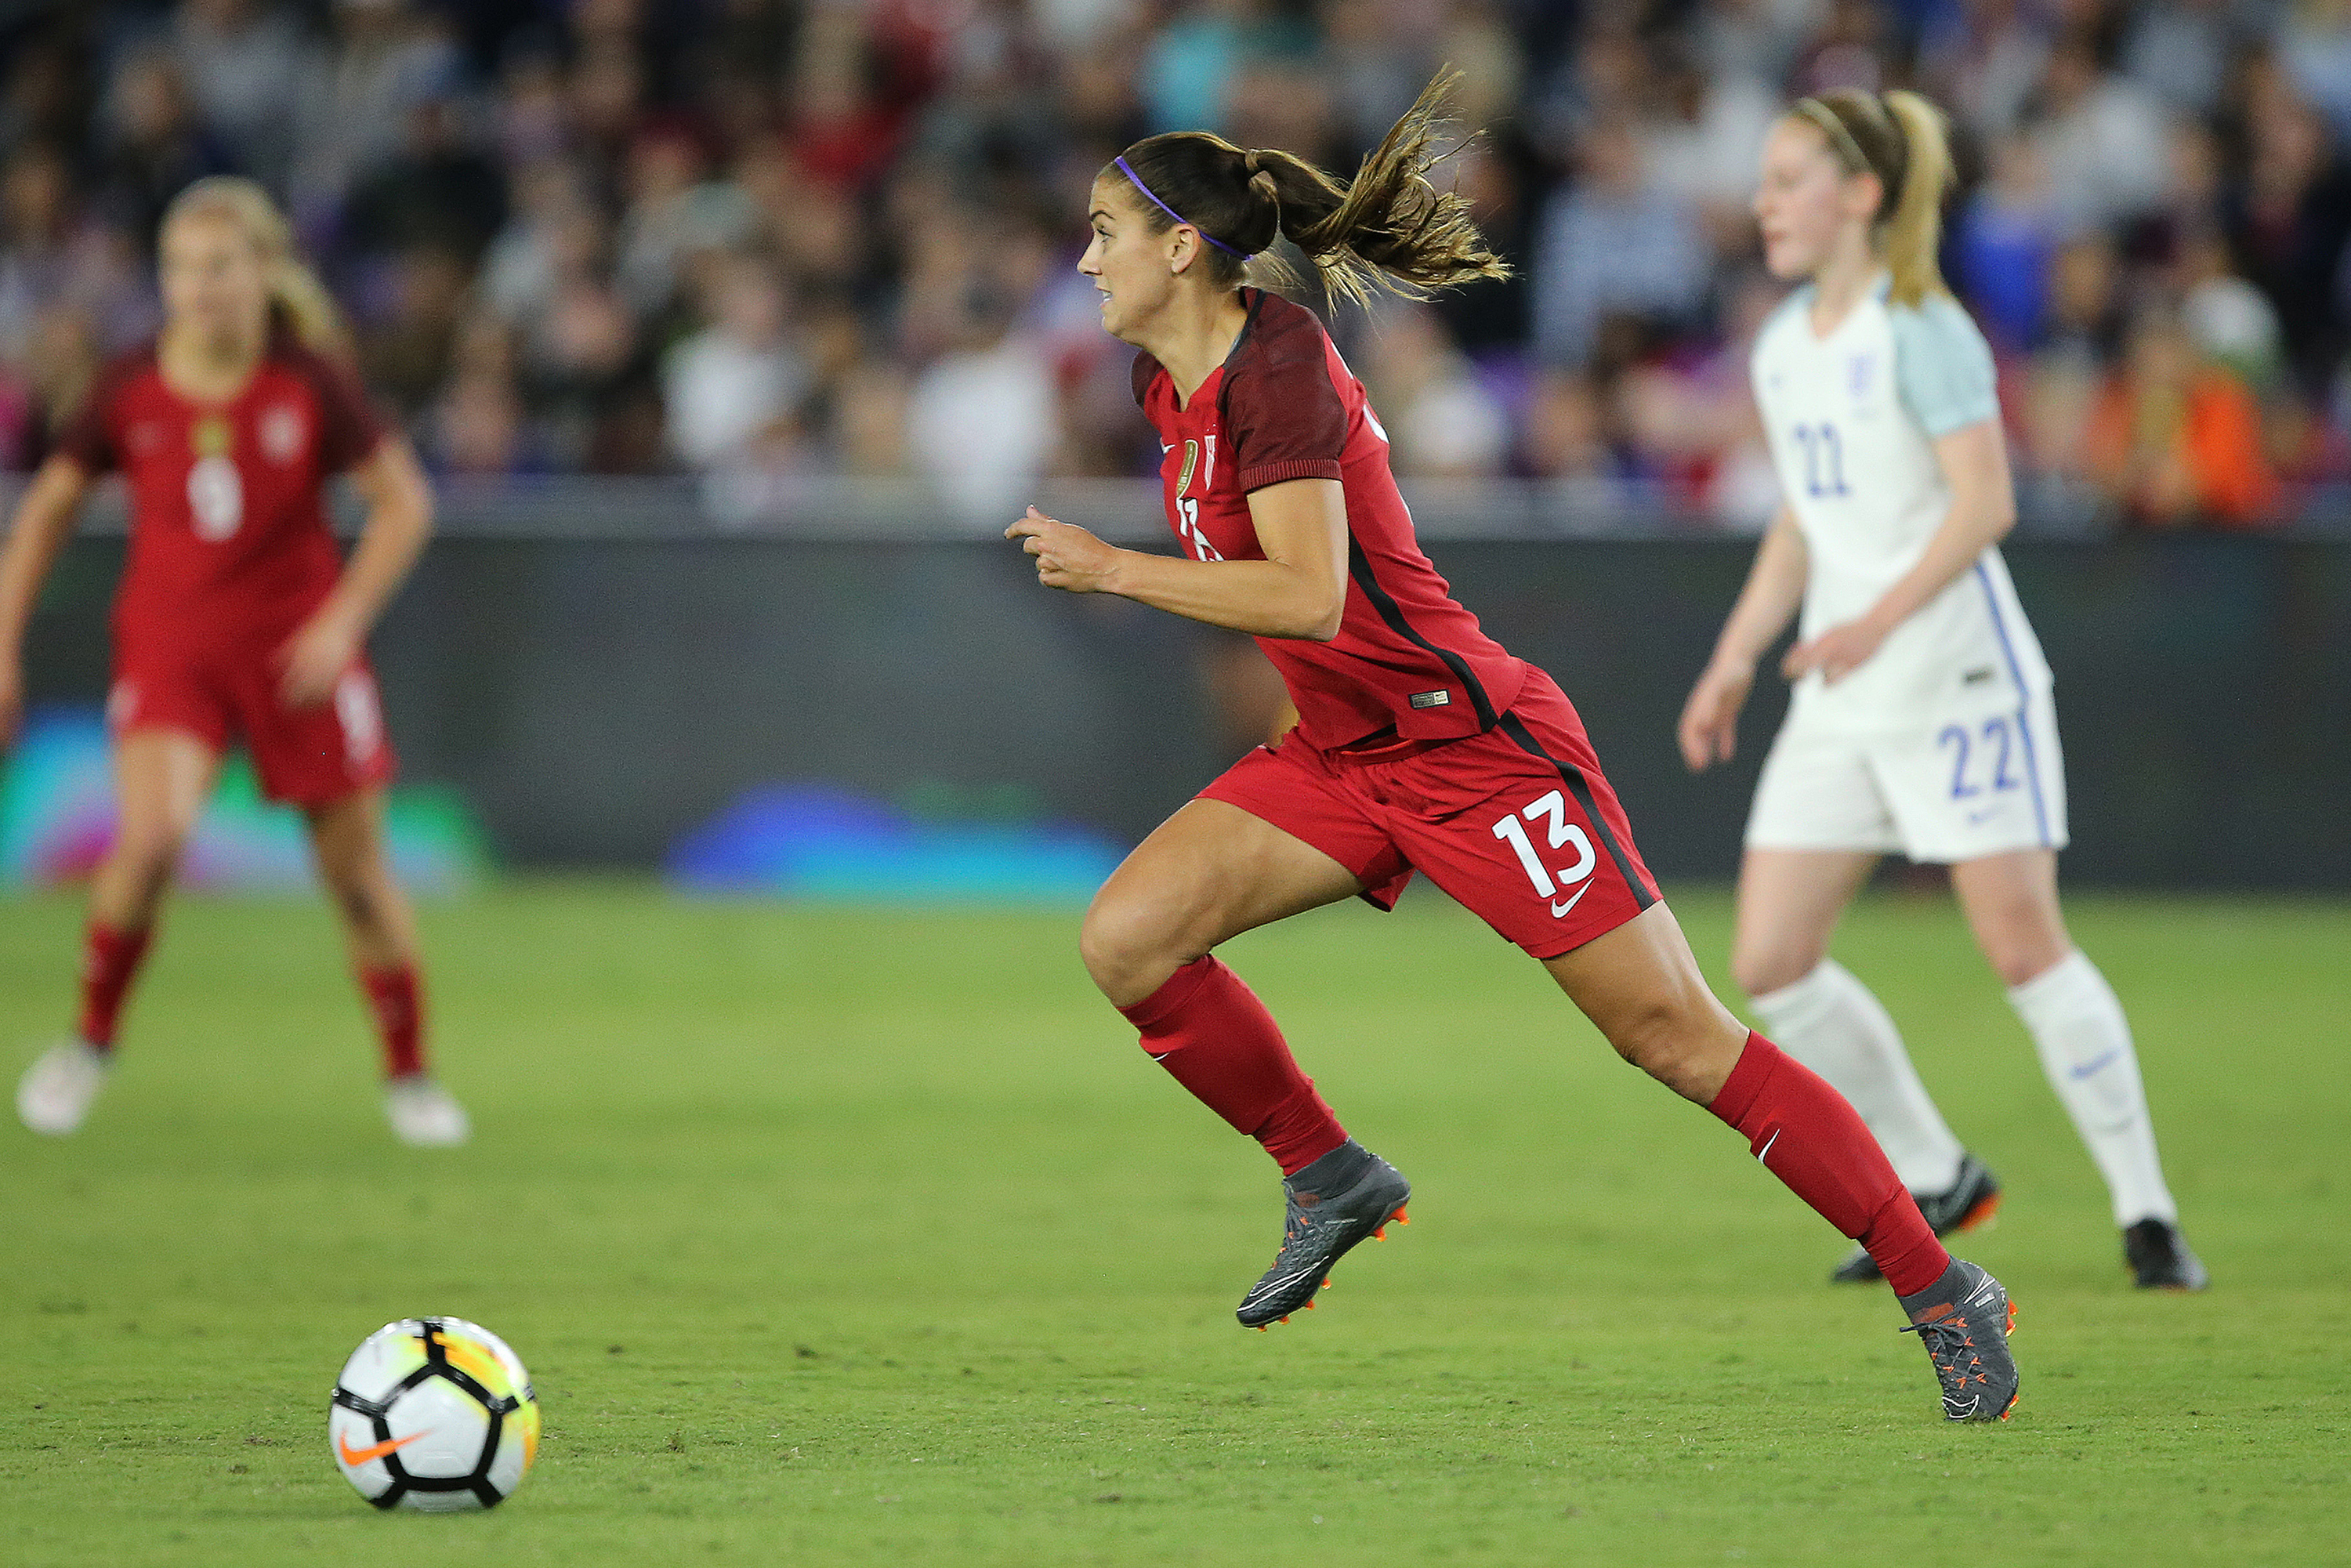 fb89922ed4e Alex Morgan will play herself in a family film - Stars and Stripes FC